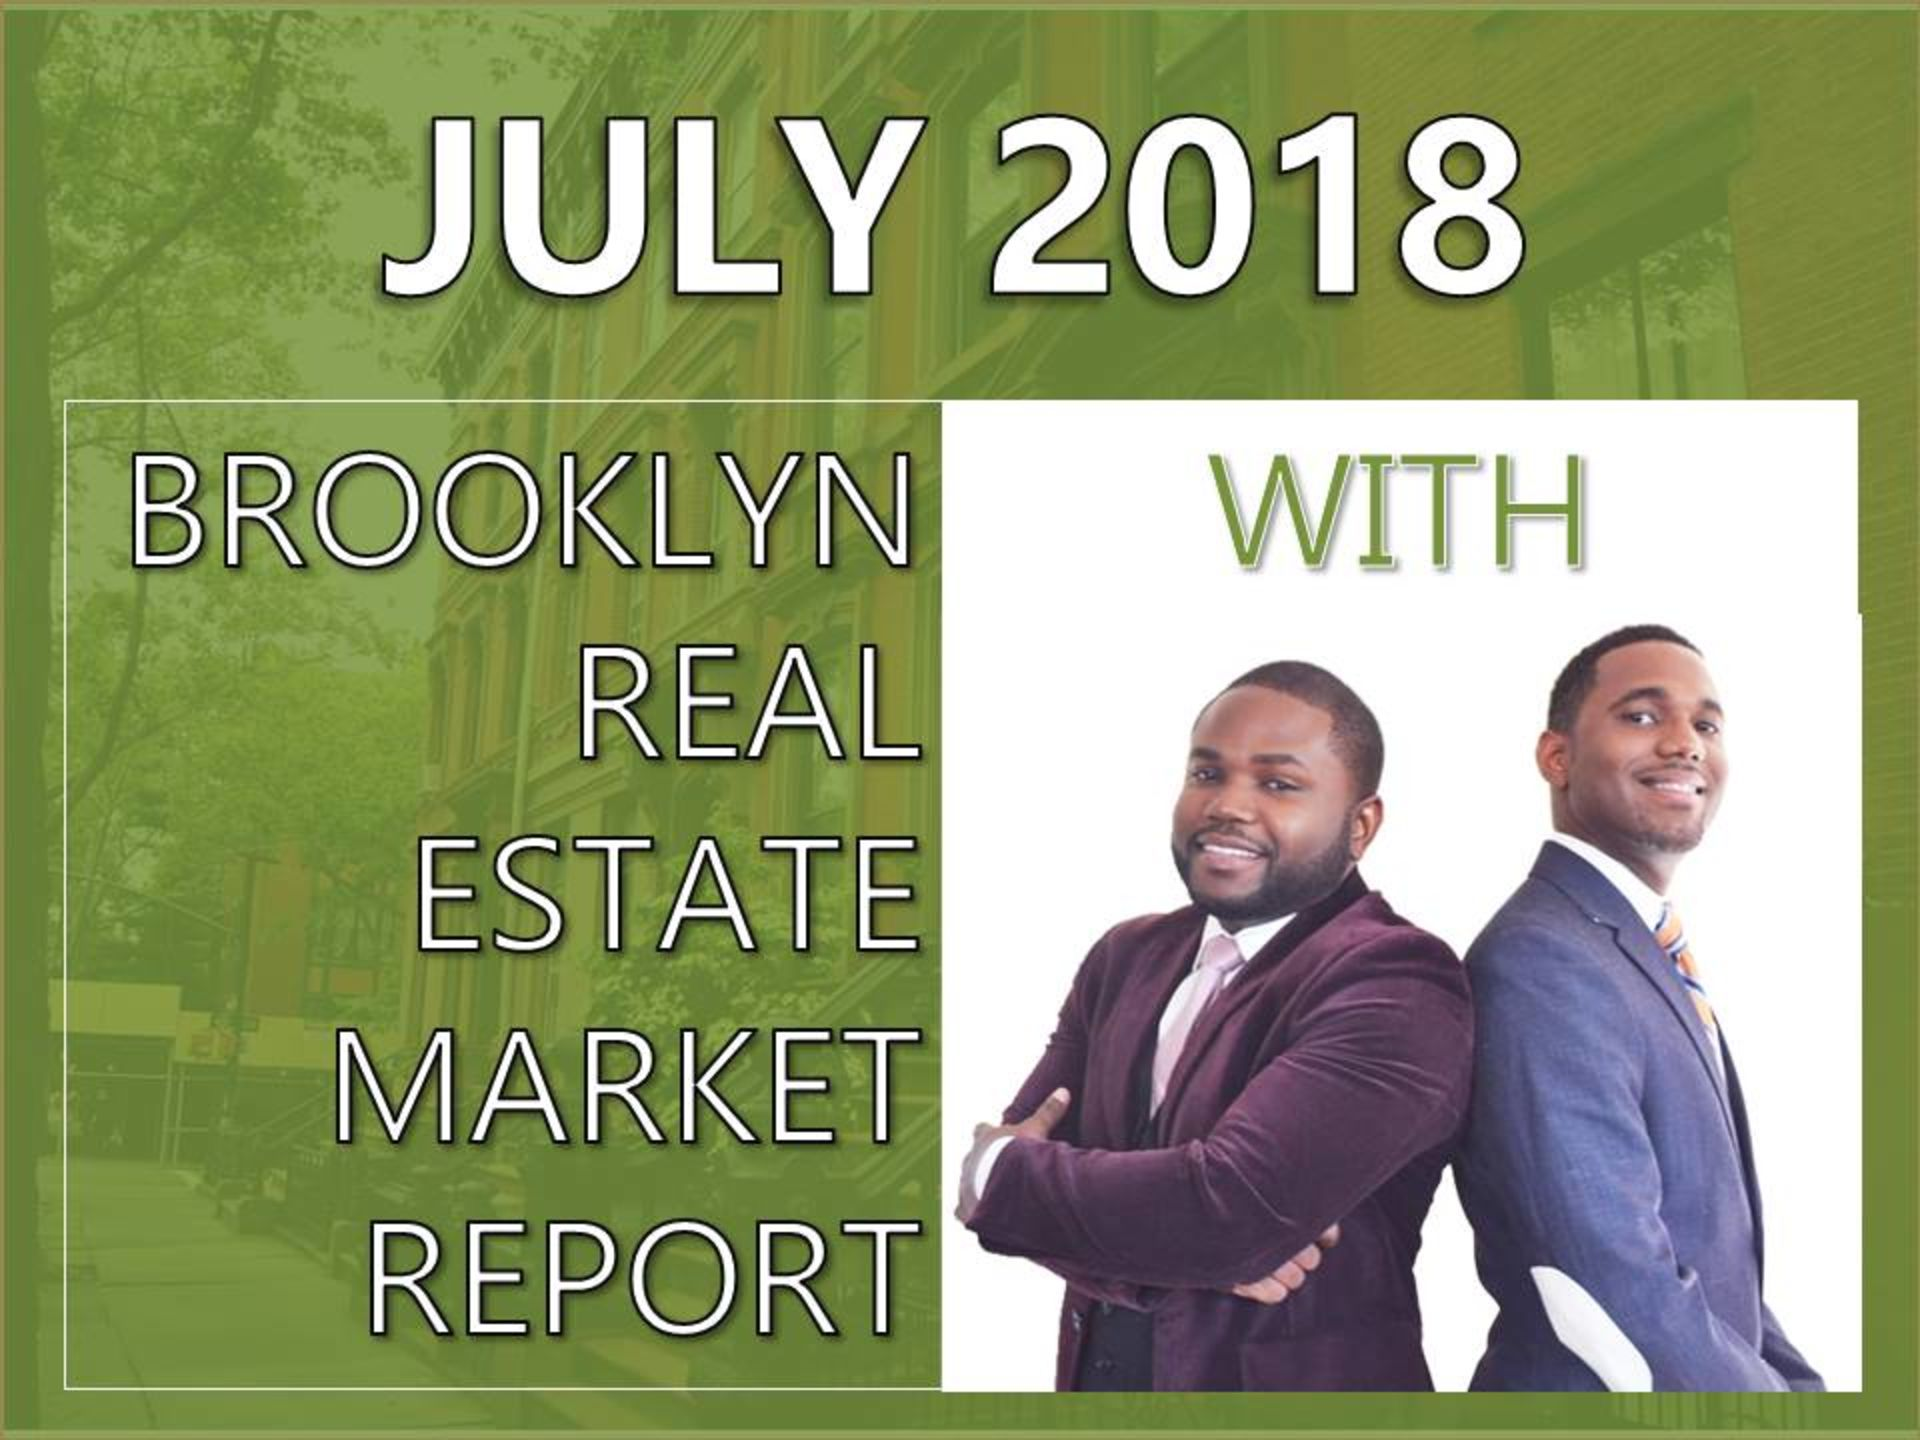 July 2018 Brooklyn Real Estate Market Report